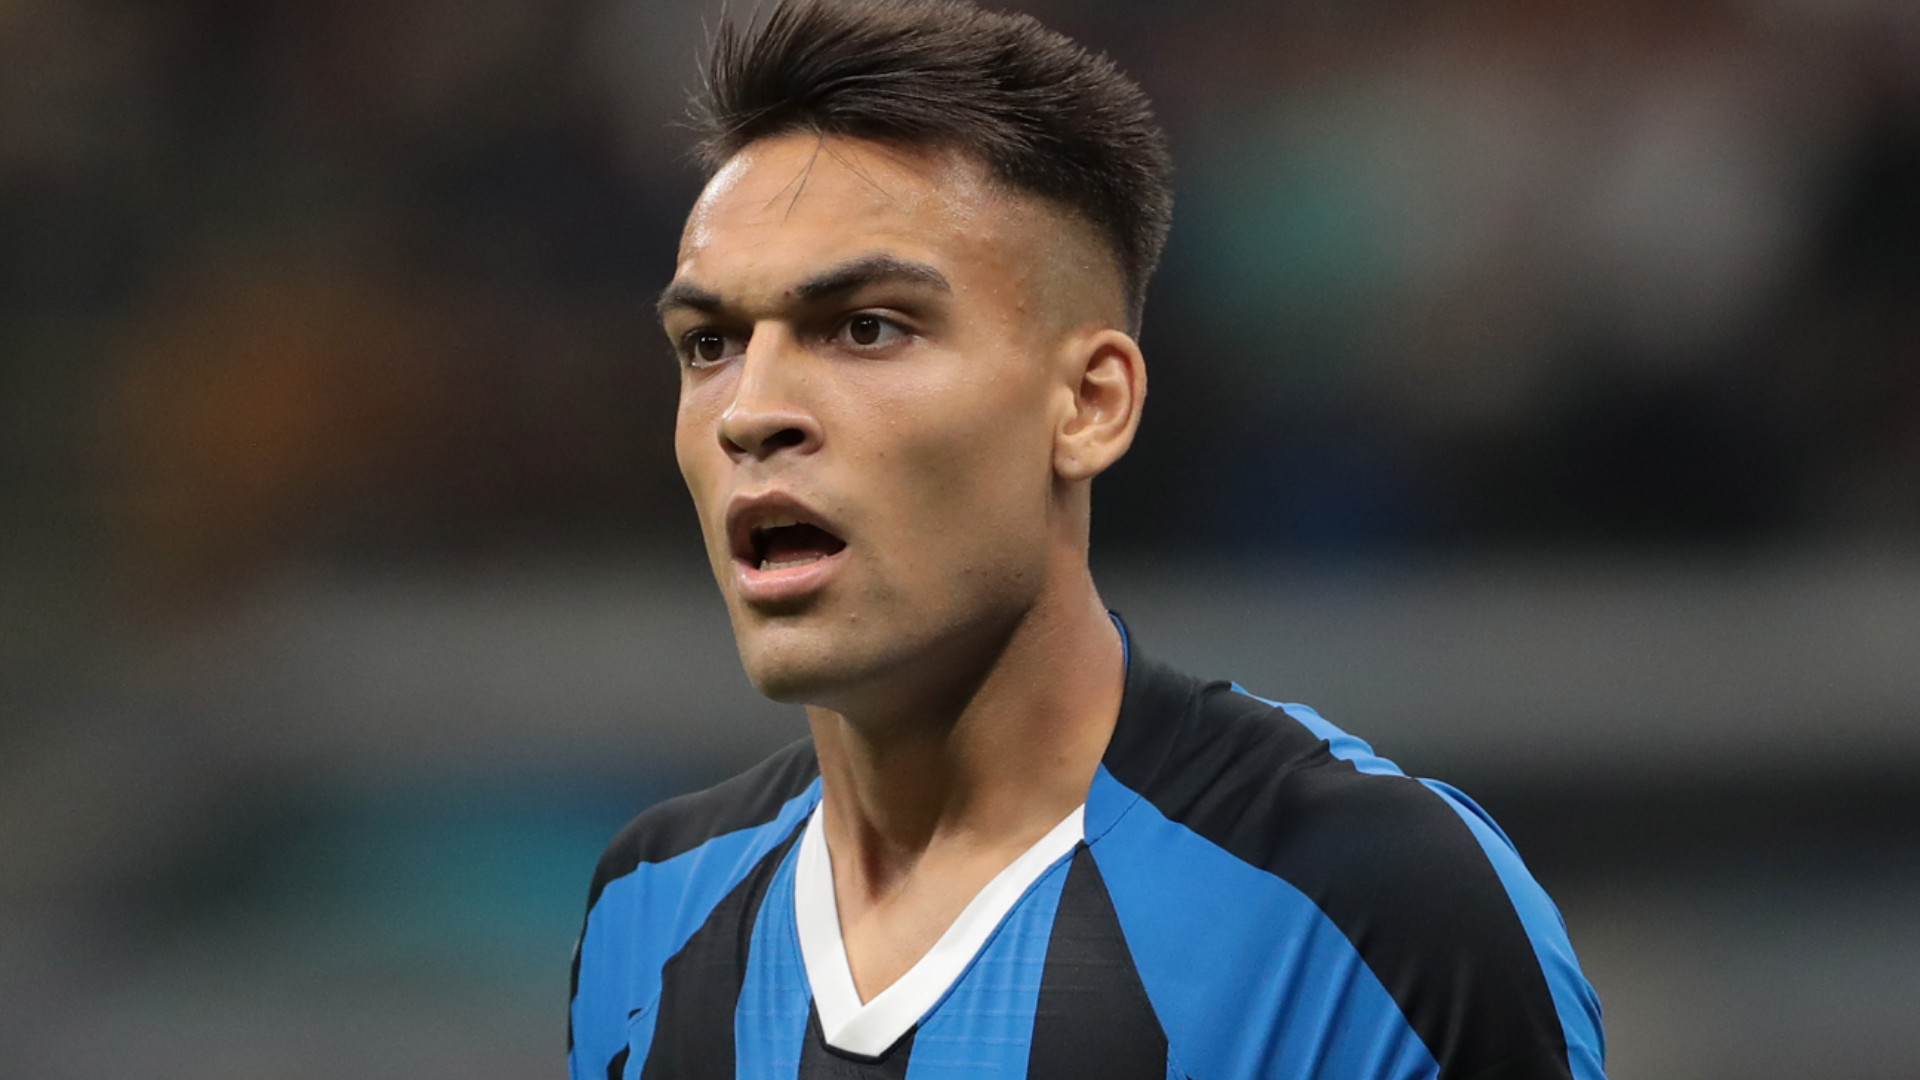 It would be great to see Lautaro and Messi together at Barca, says new Argentina star's agent